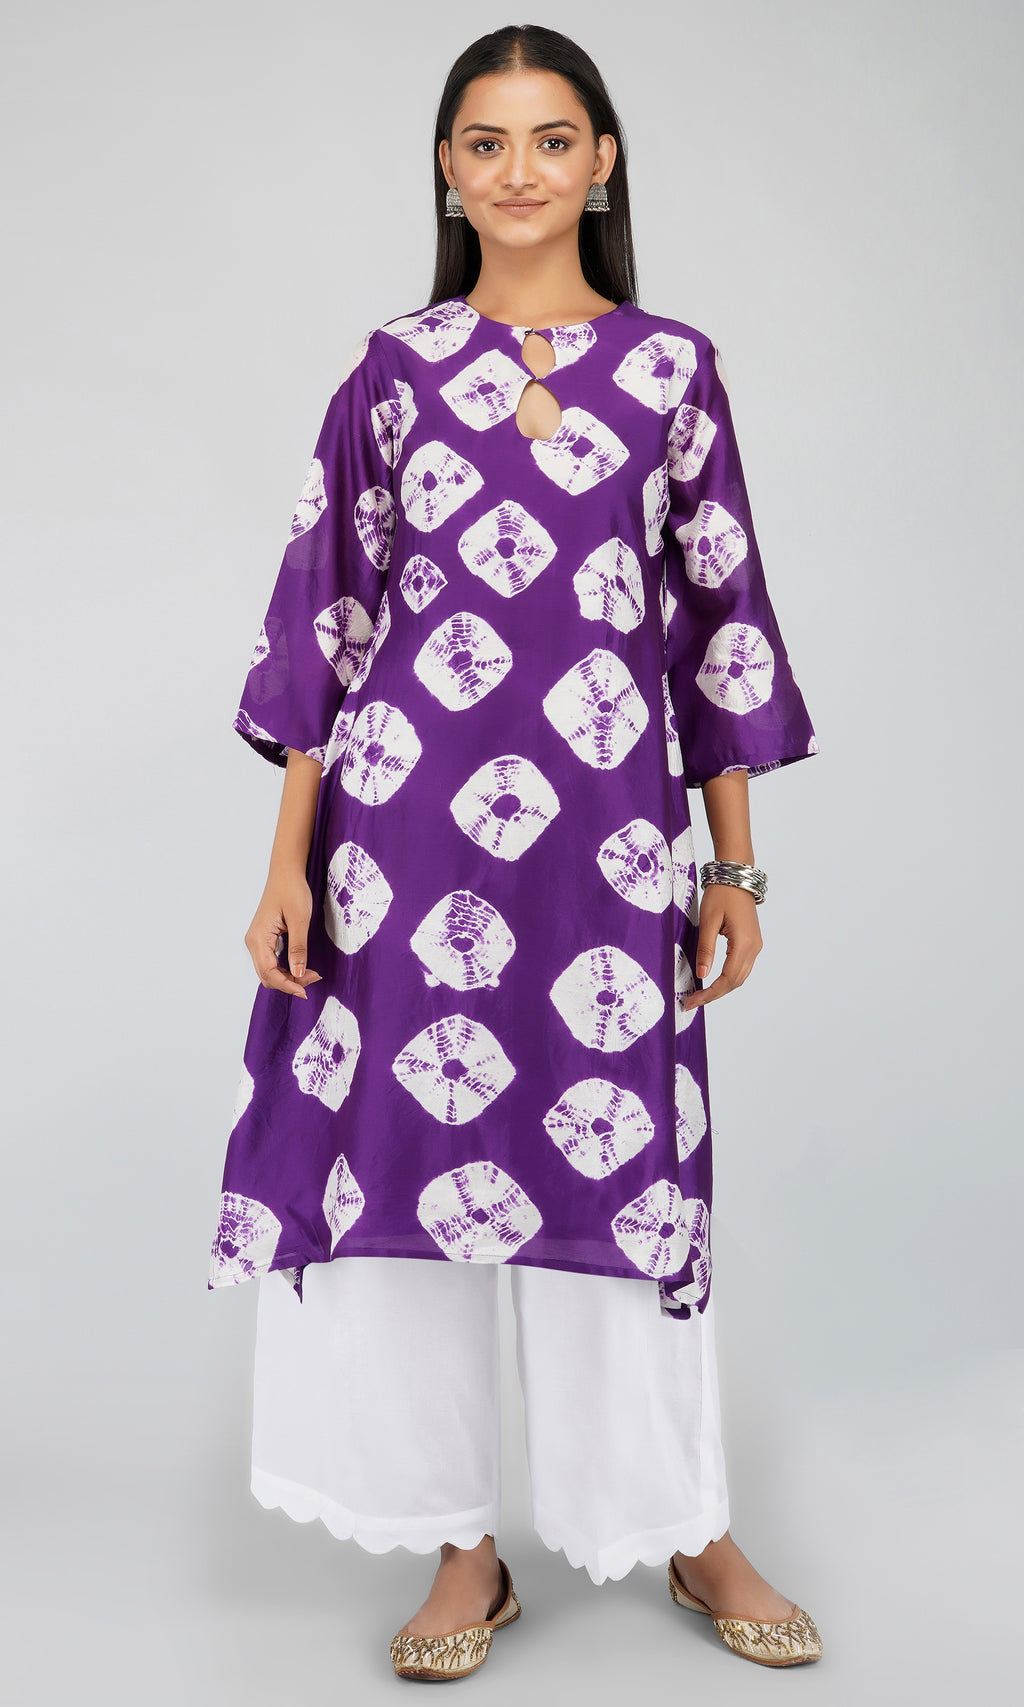 Purple Bandhani Dye Chanderi Silk Kurta with Cotton Pants and Scallop Chanderi Silk Dupatta - Set of 3